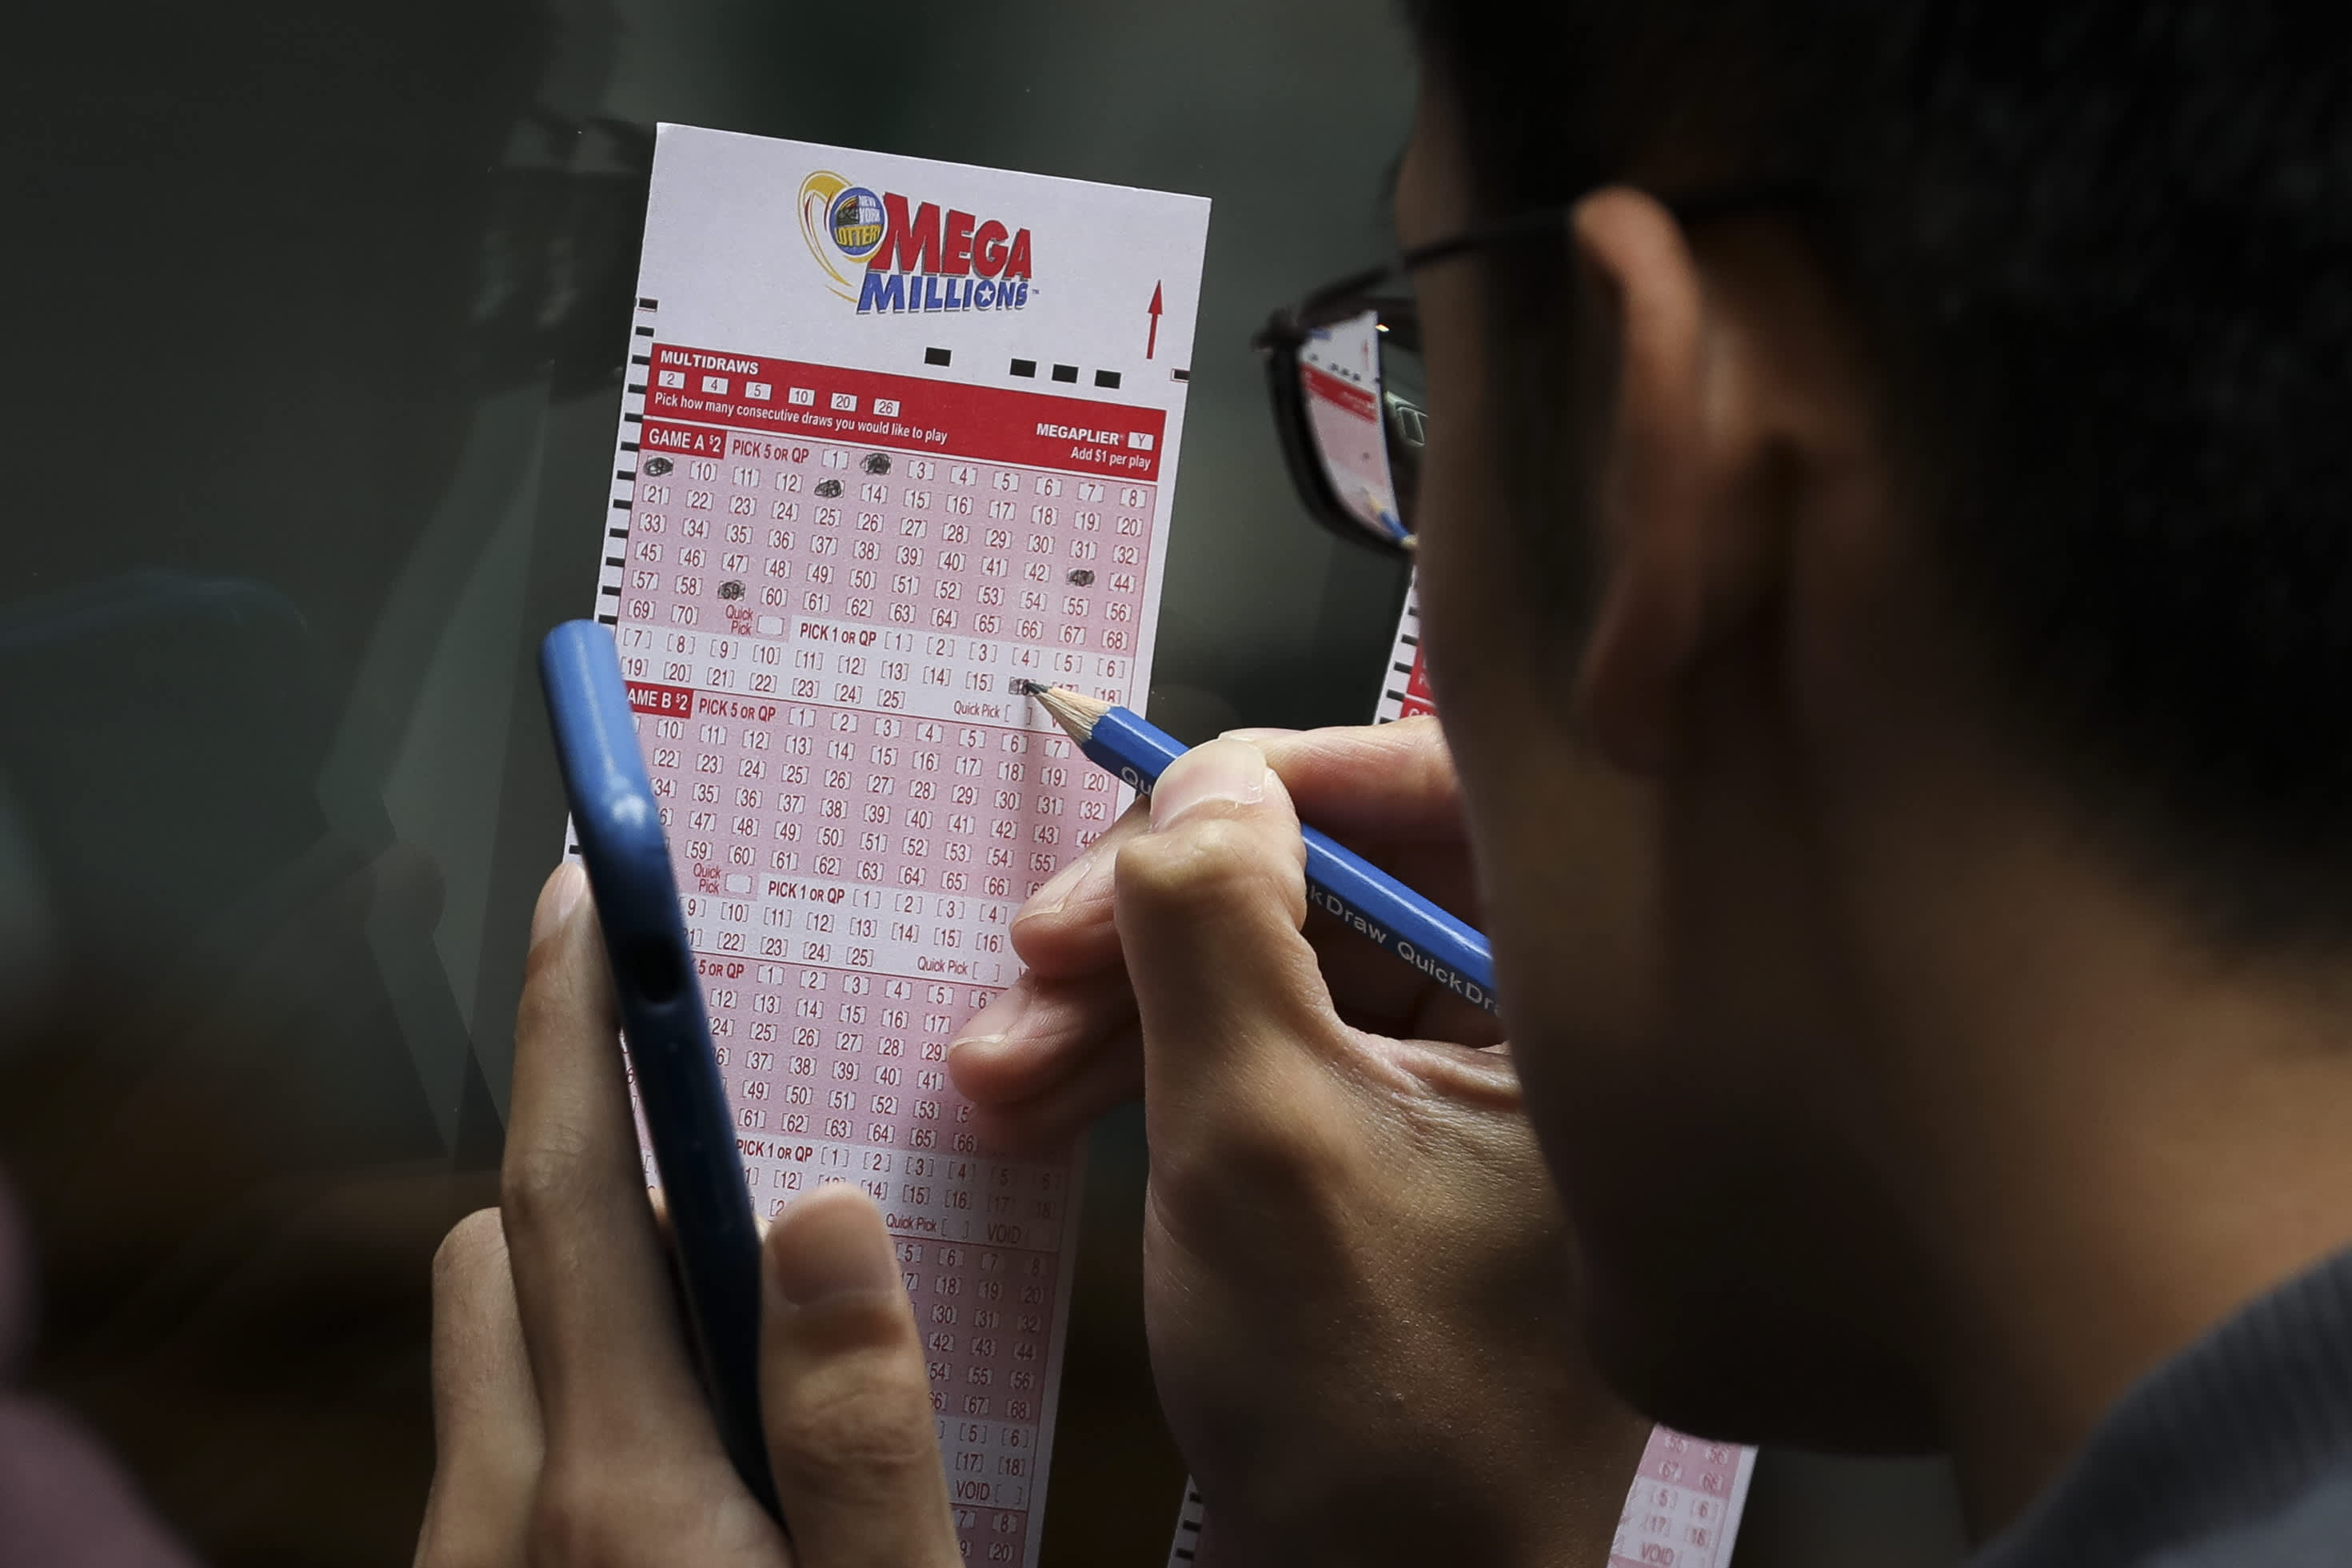 That $367 million Mega Millions jackpot comes with big tax bite